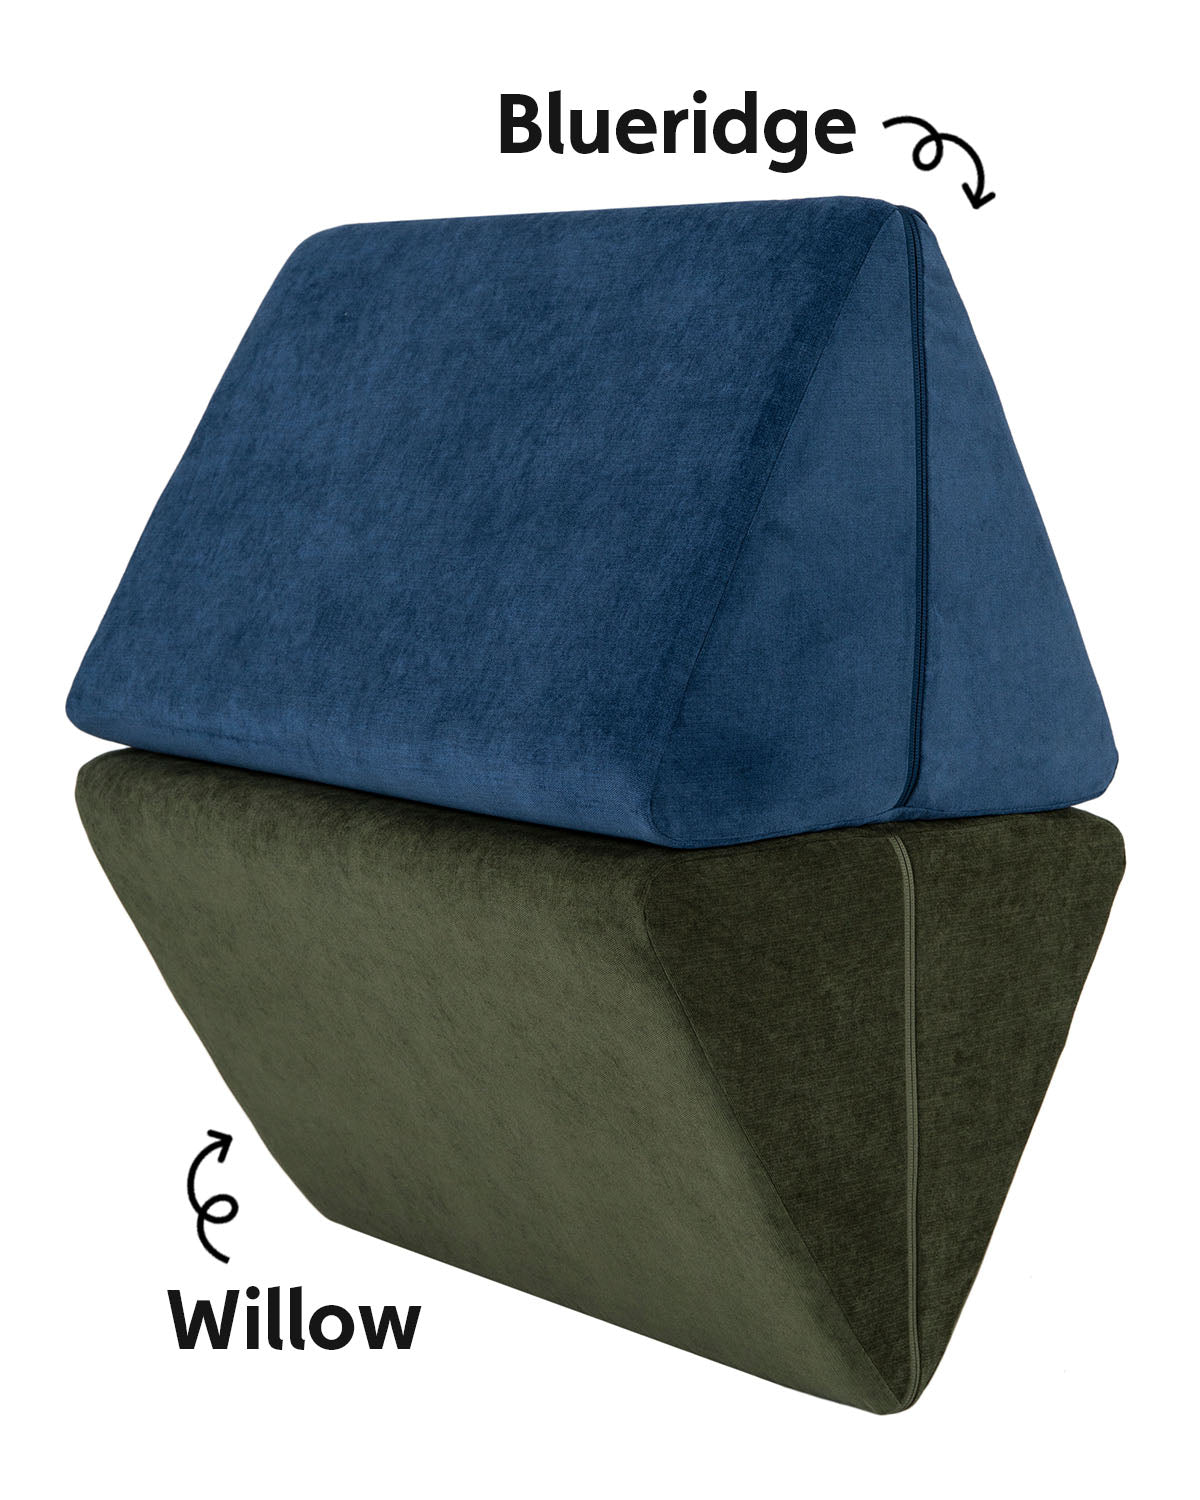 Blueridge and Willow double-brushed Nugget Pillows stacked on top of each other